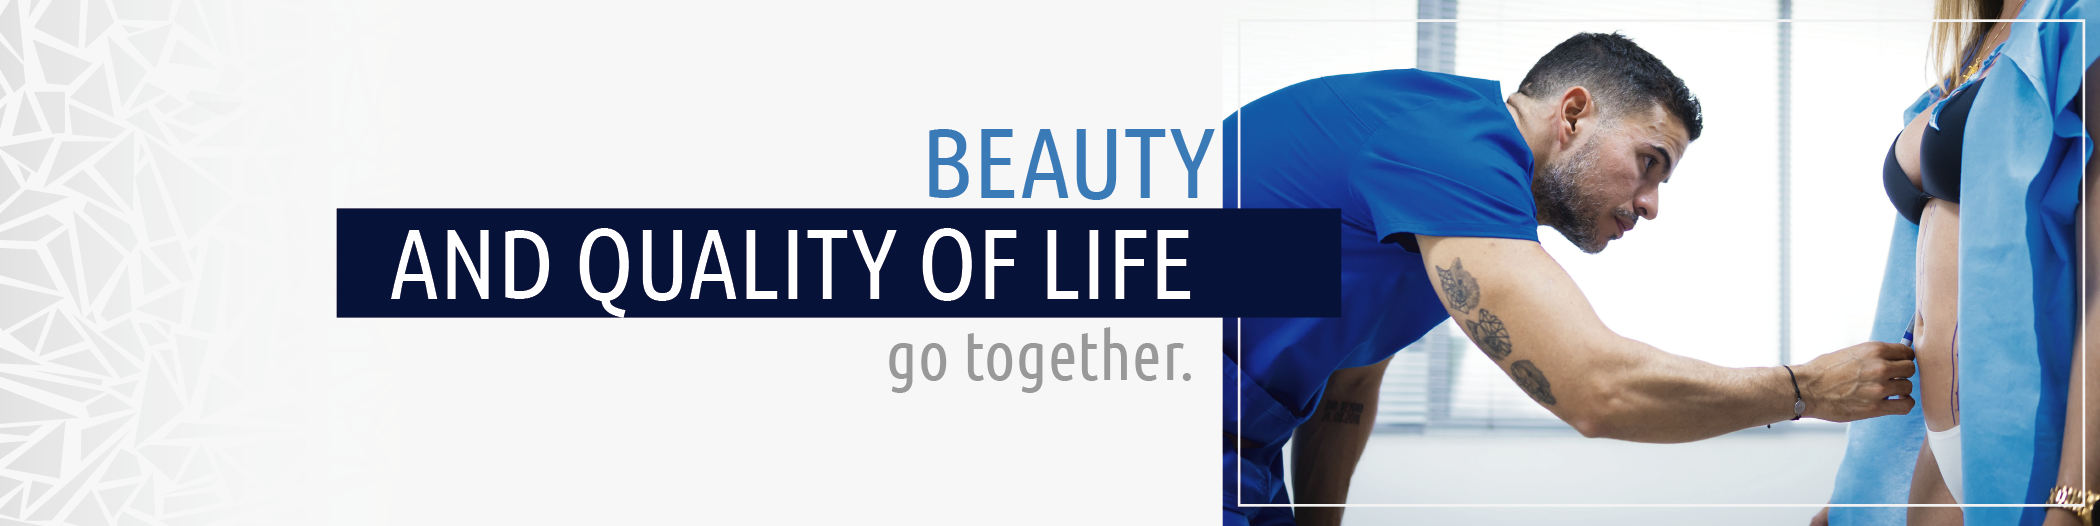 Beauty Quality Life | CECM Colombia - Dr. Álvaro Hernán Rodriguez